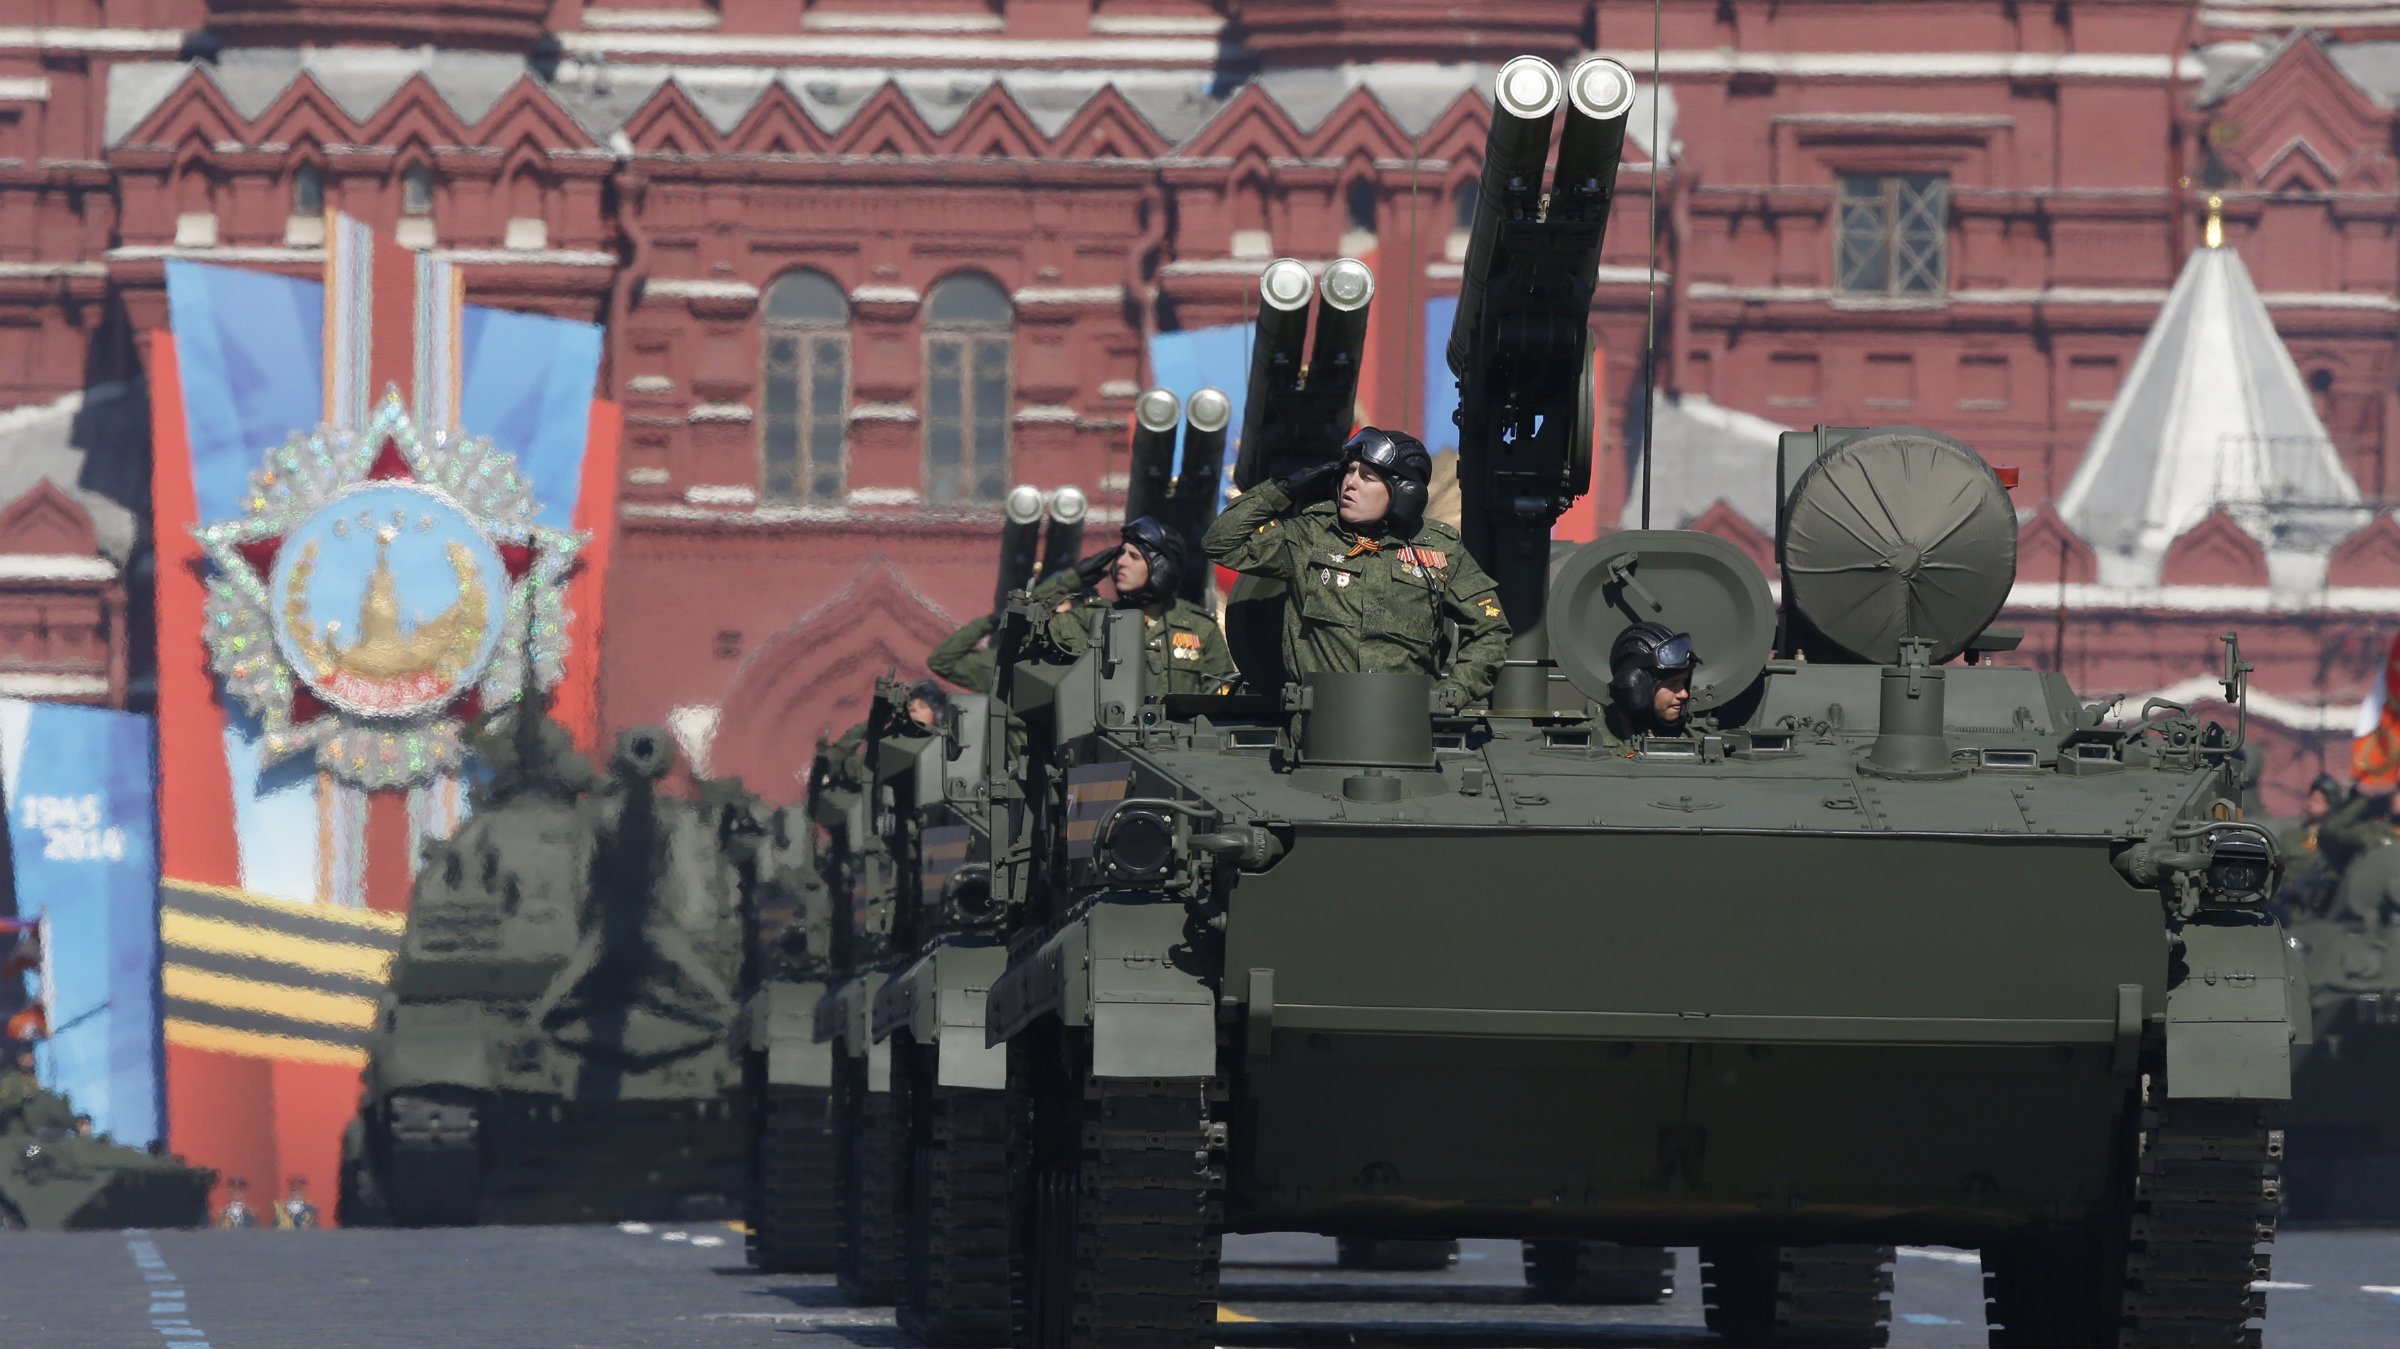 Russian servicemen aboard armoured military vehicles salute during the Victory Day parade in Moscow's Red Square.